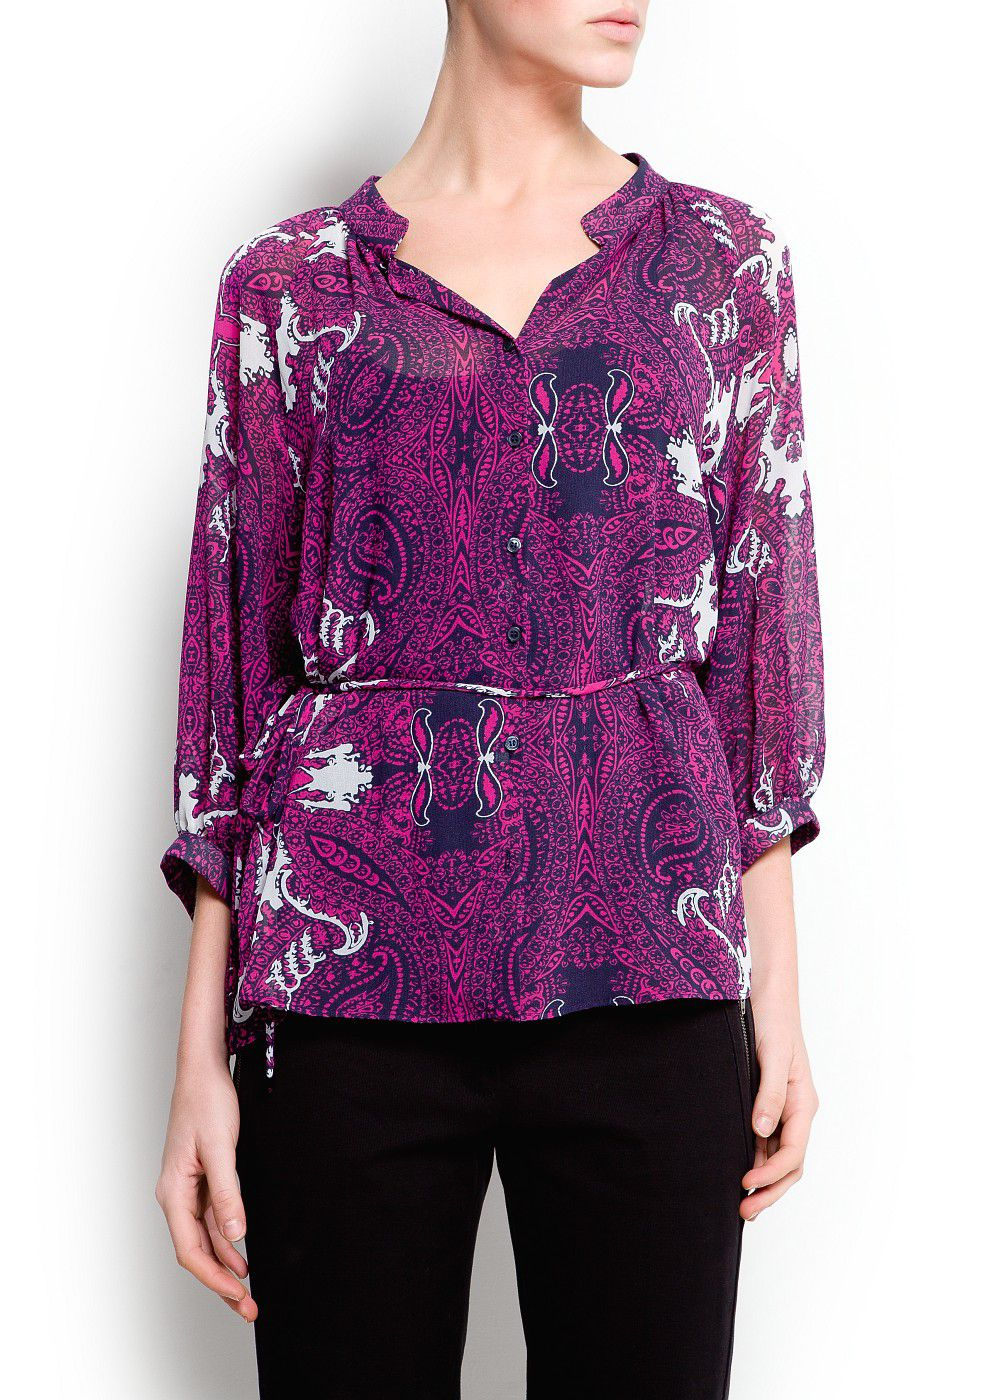 Printed sheer blouse